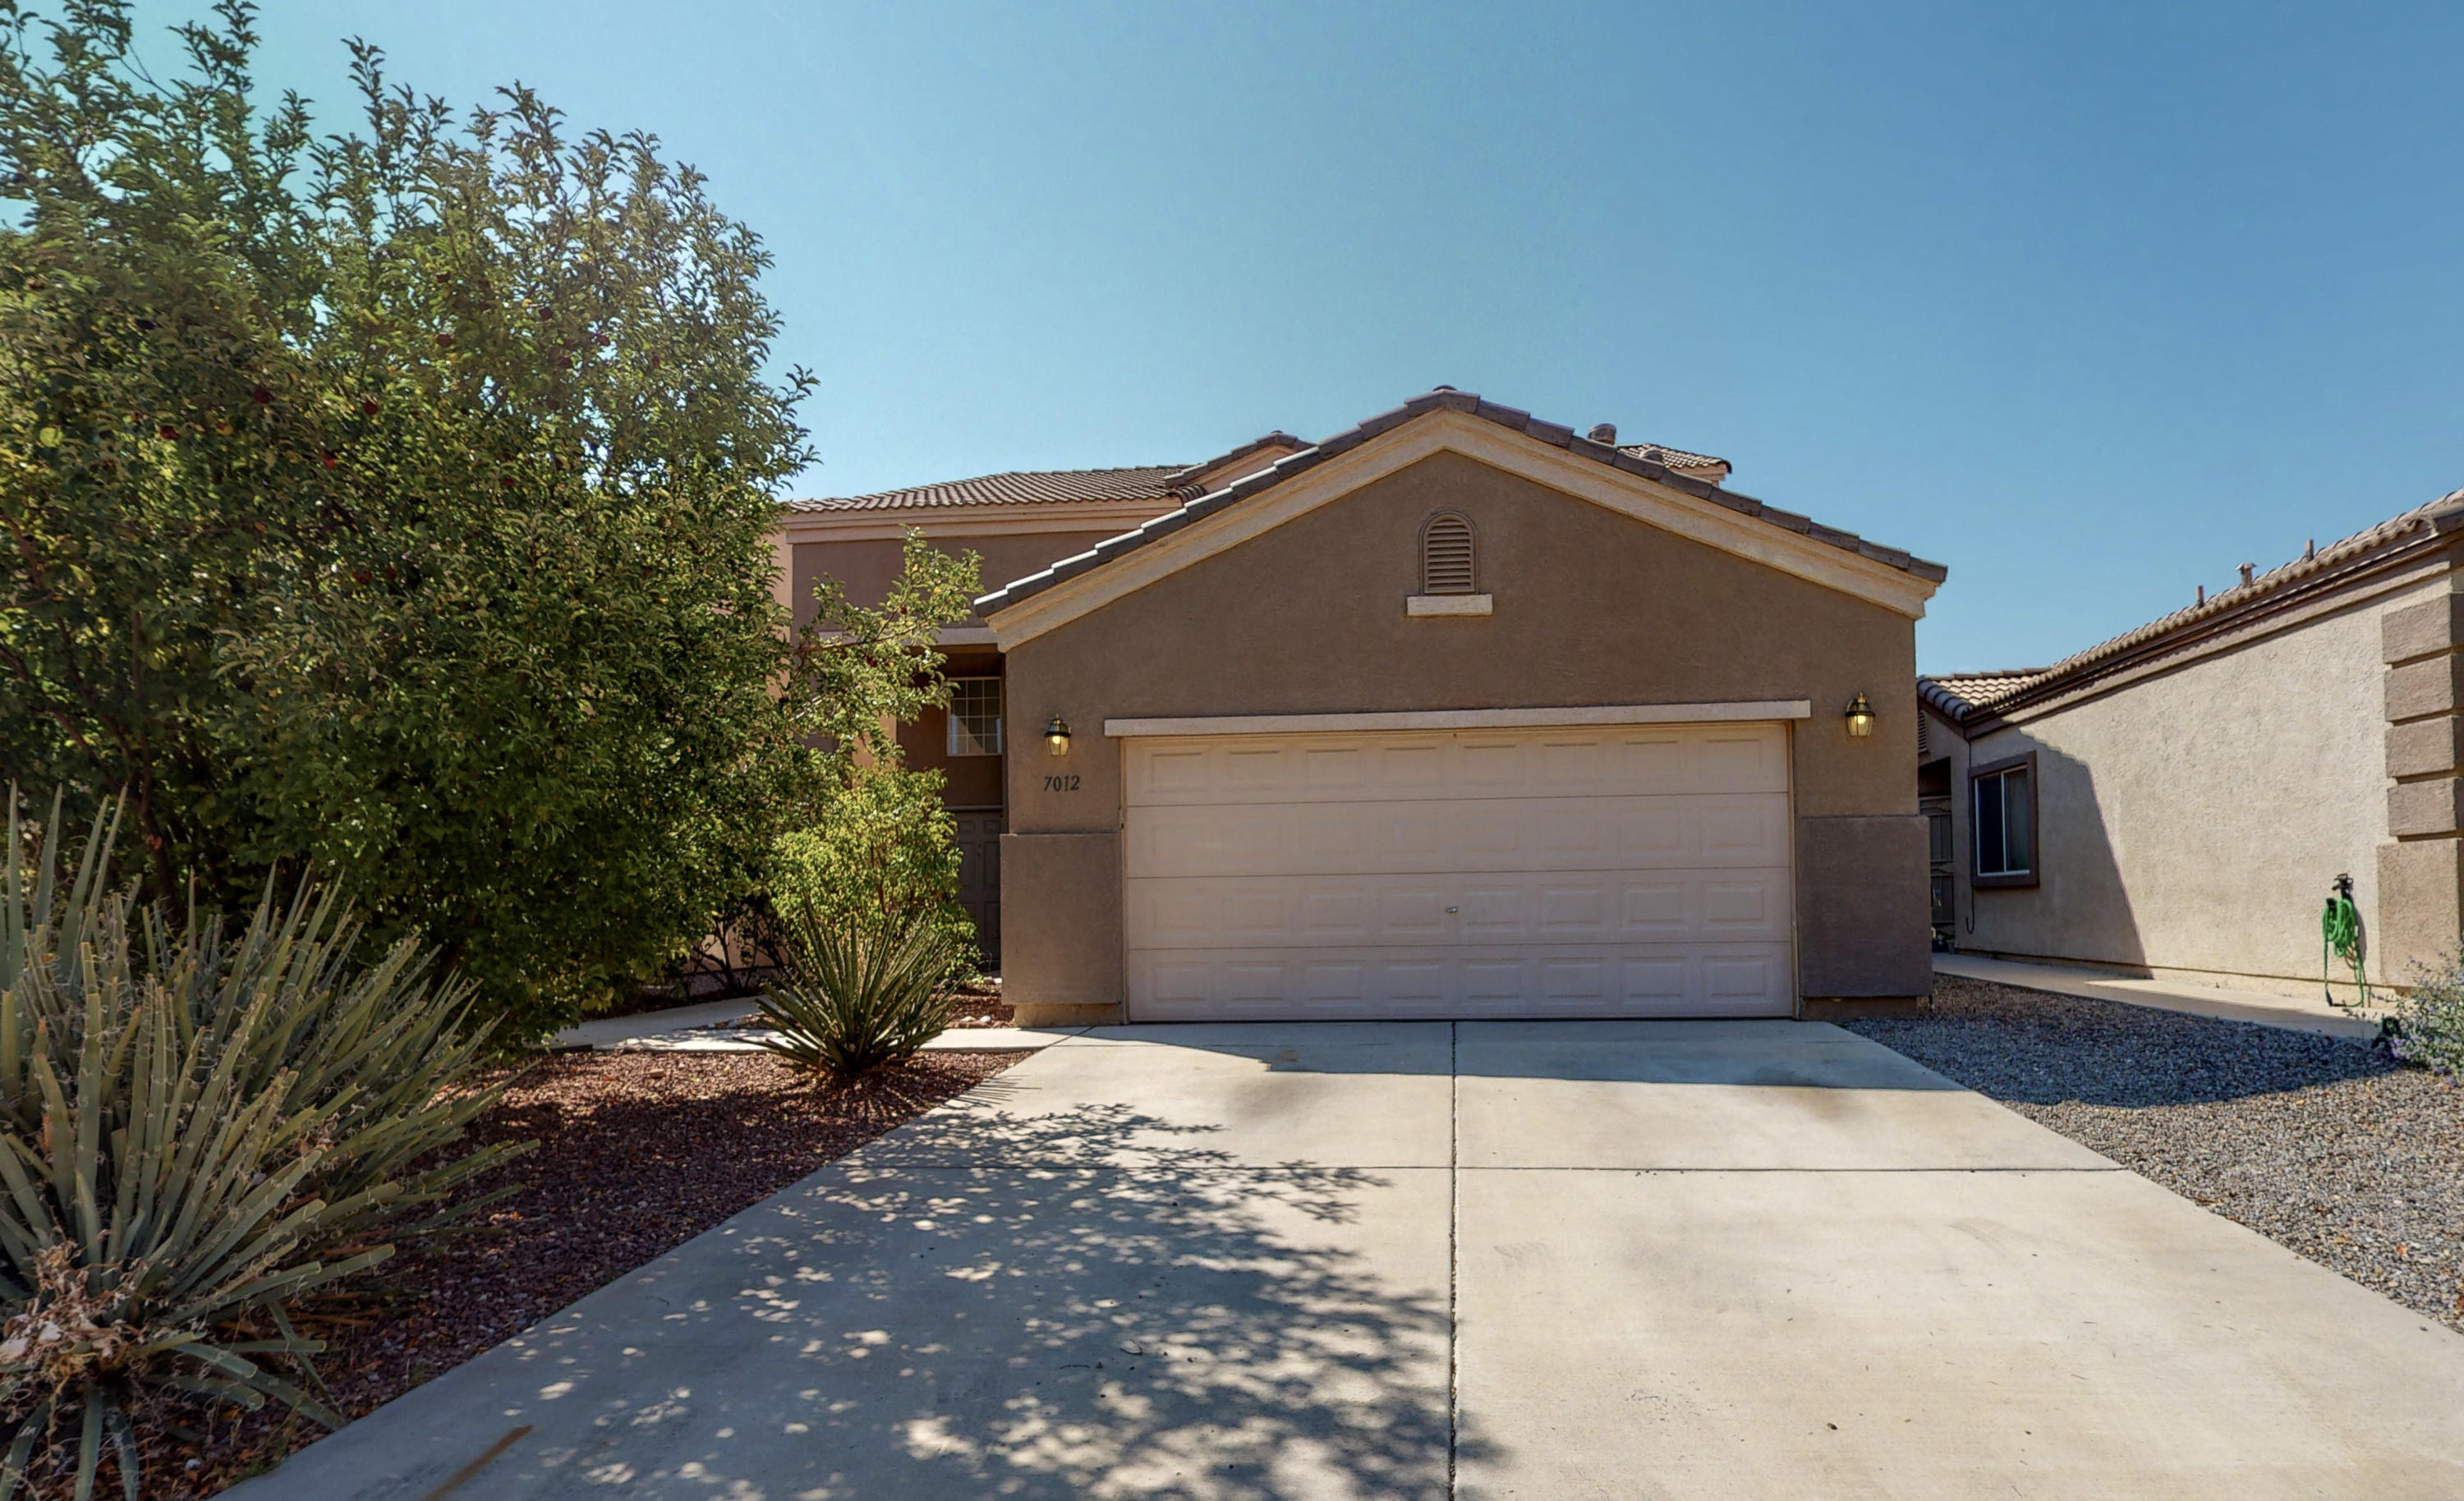 Spacious 4 Bedroom in Ventana West just became available! This home has brand new carpet and vinyl, fresh paint throughout, 4 bedrooms with 1 downstairs, a 3/4 bath downstairs, open concept floor plan, laundry upstairs, and a large yard! Conveniently located to Paseo Del Norte for easy commute.